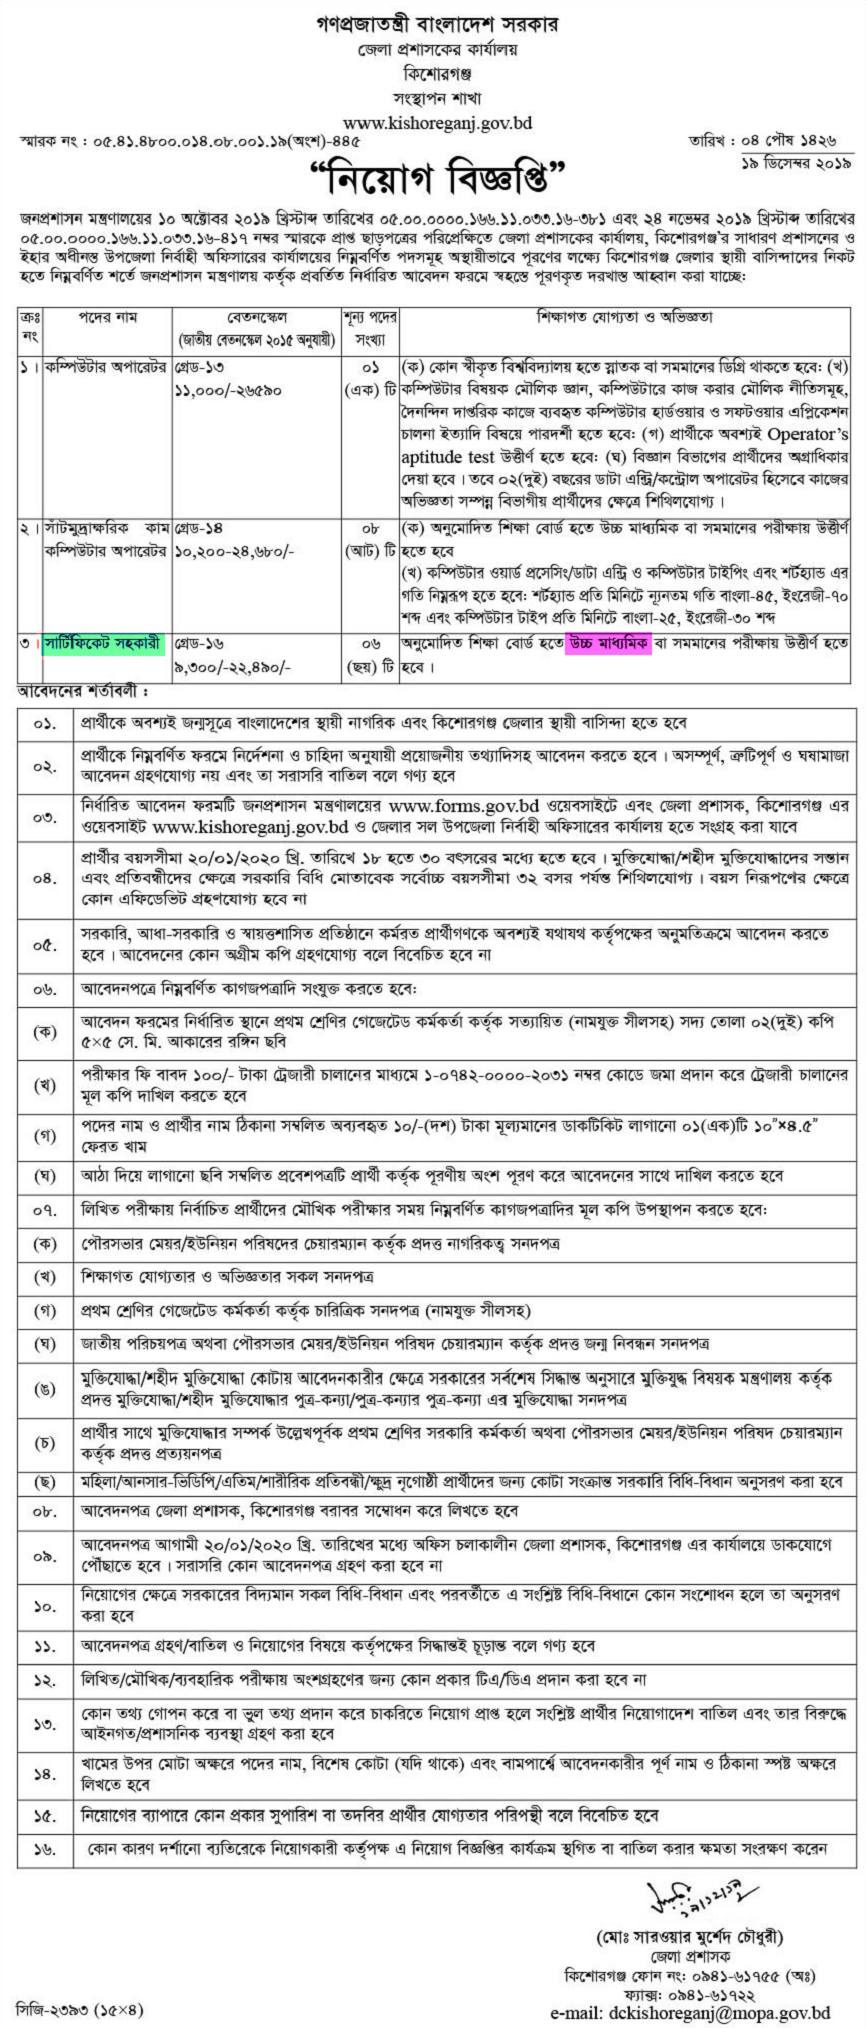 Kishoreganj DC Office Job circular 2020